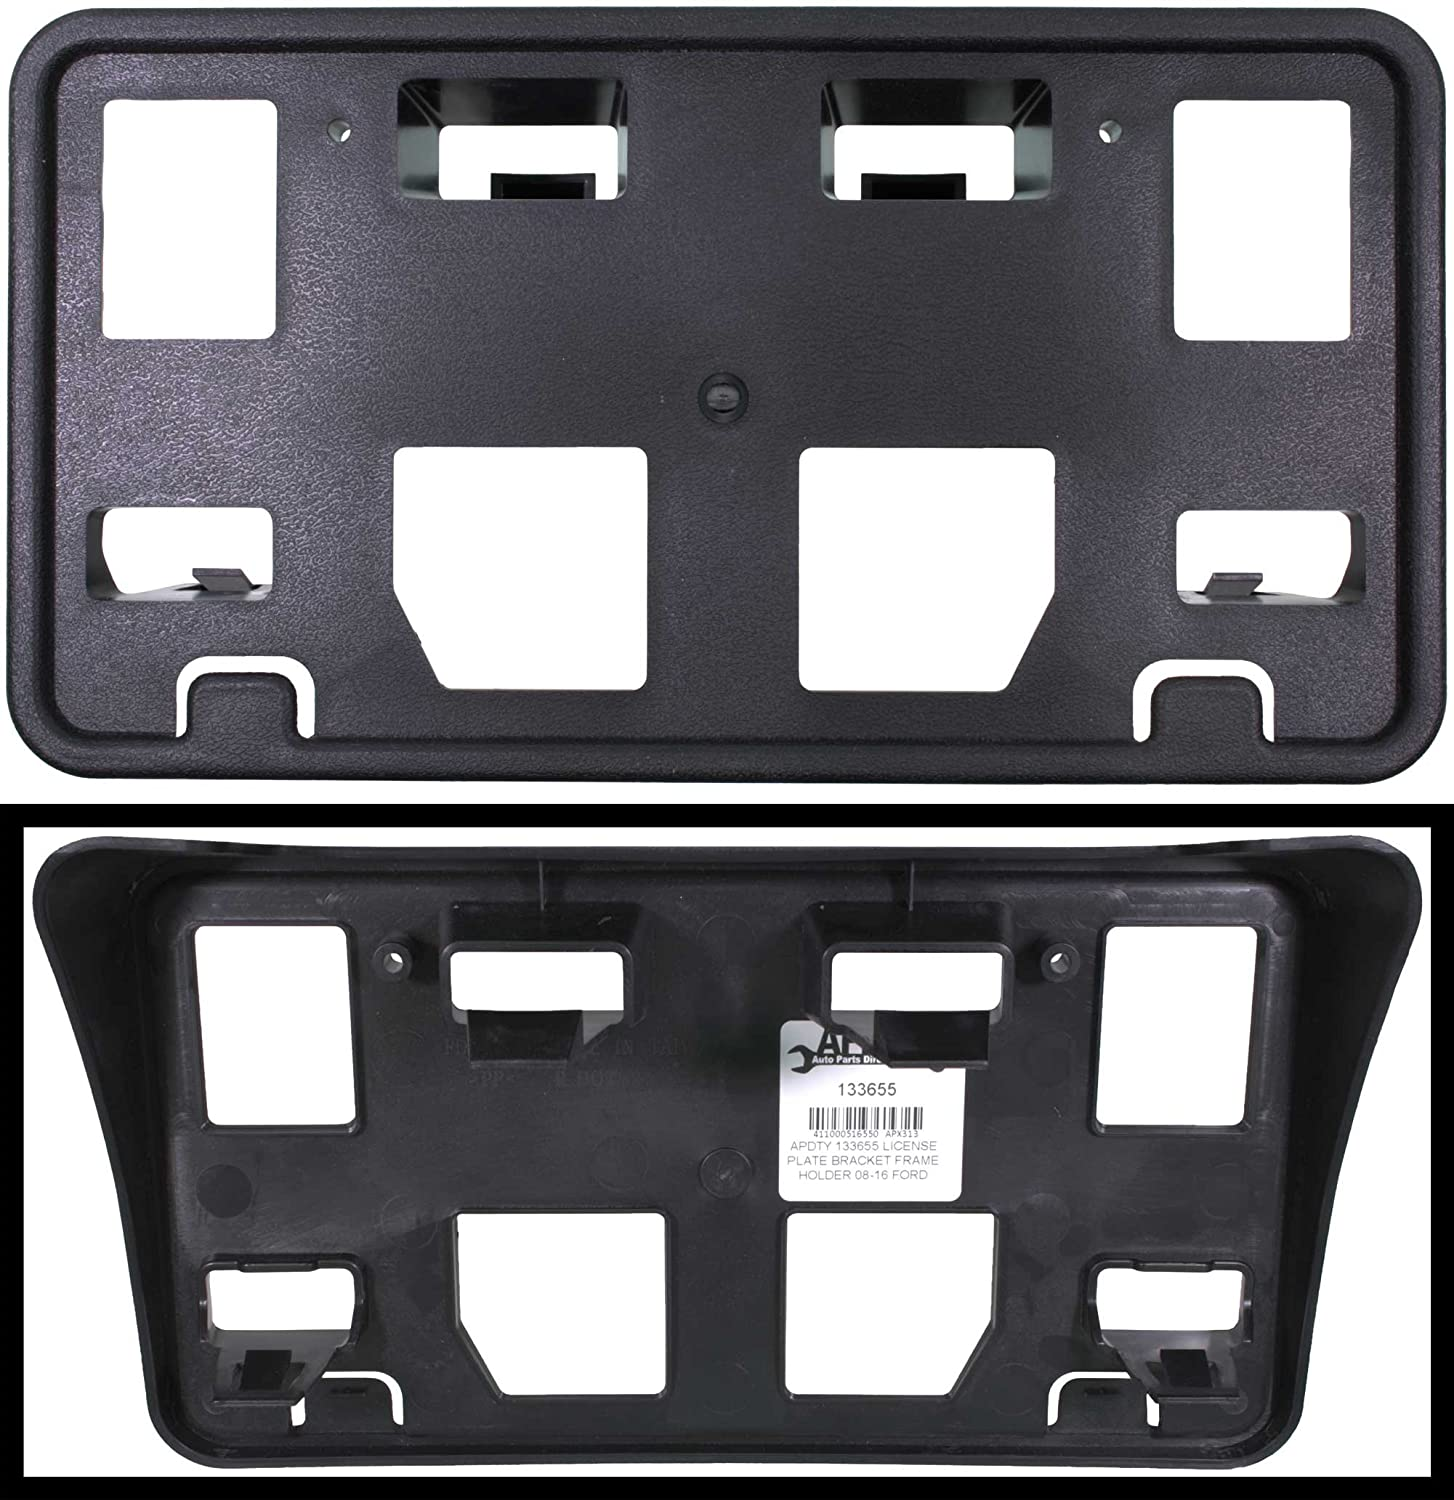 APDTY 133655 License Plate Bracket Plastic Frame Holder Fits 2008-2016 Ford  E150 E250 E350 Econoline Van (Replaces 8C2Z-17A385-AA, 8C2Z17A385AA)